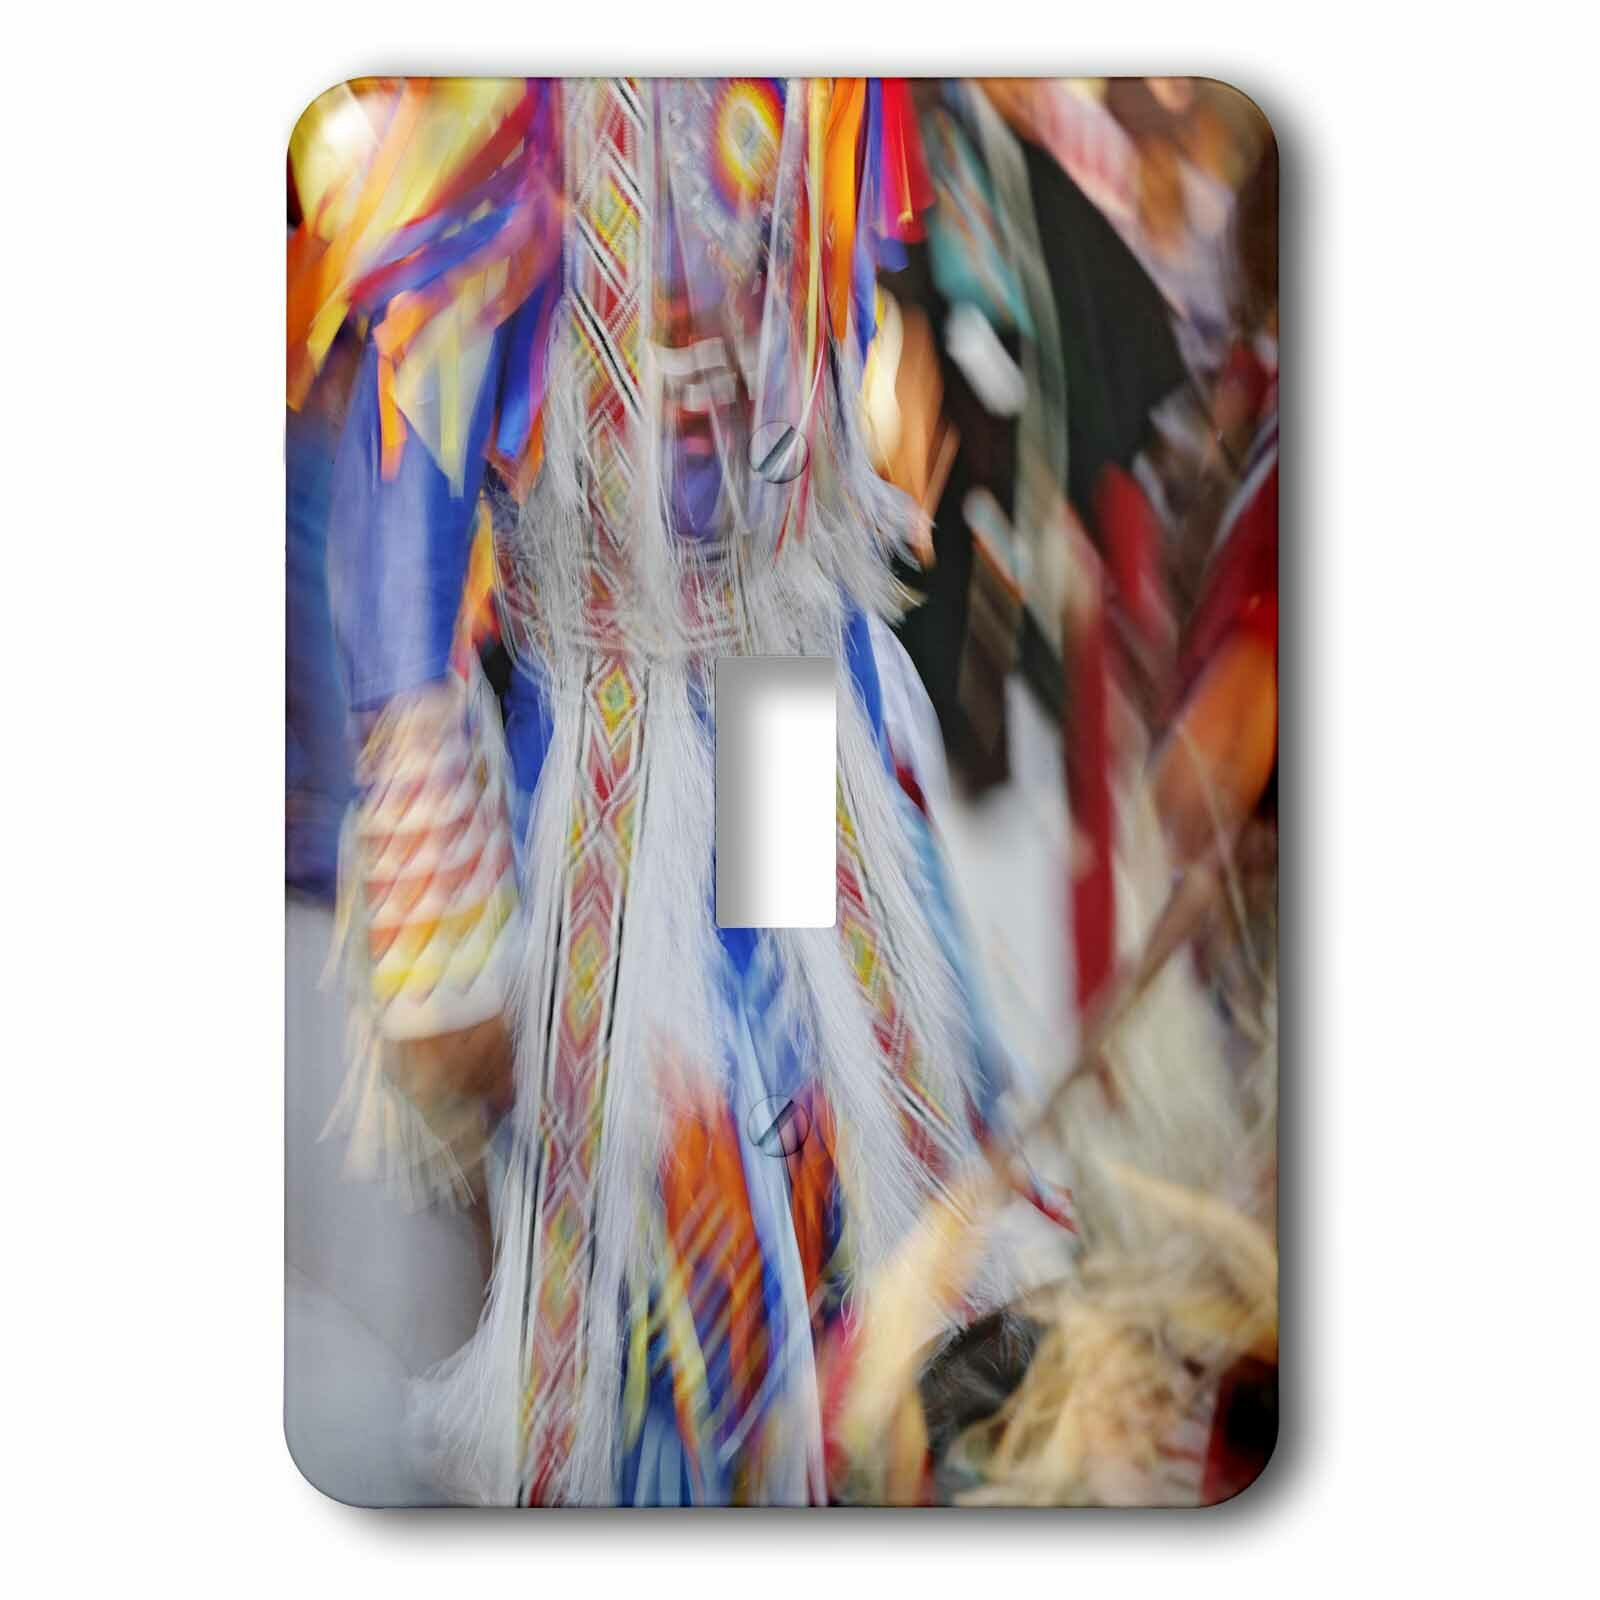 3drose Native American Indian Dance Montana 1 Gang Toggle Light Switch Wall Plate Wayfair